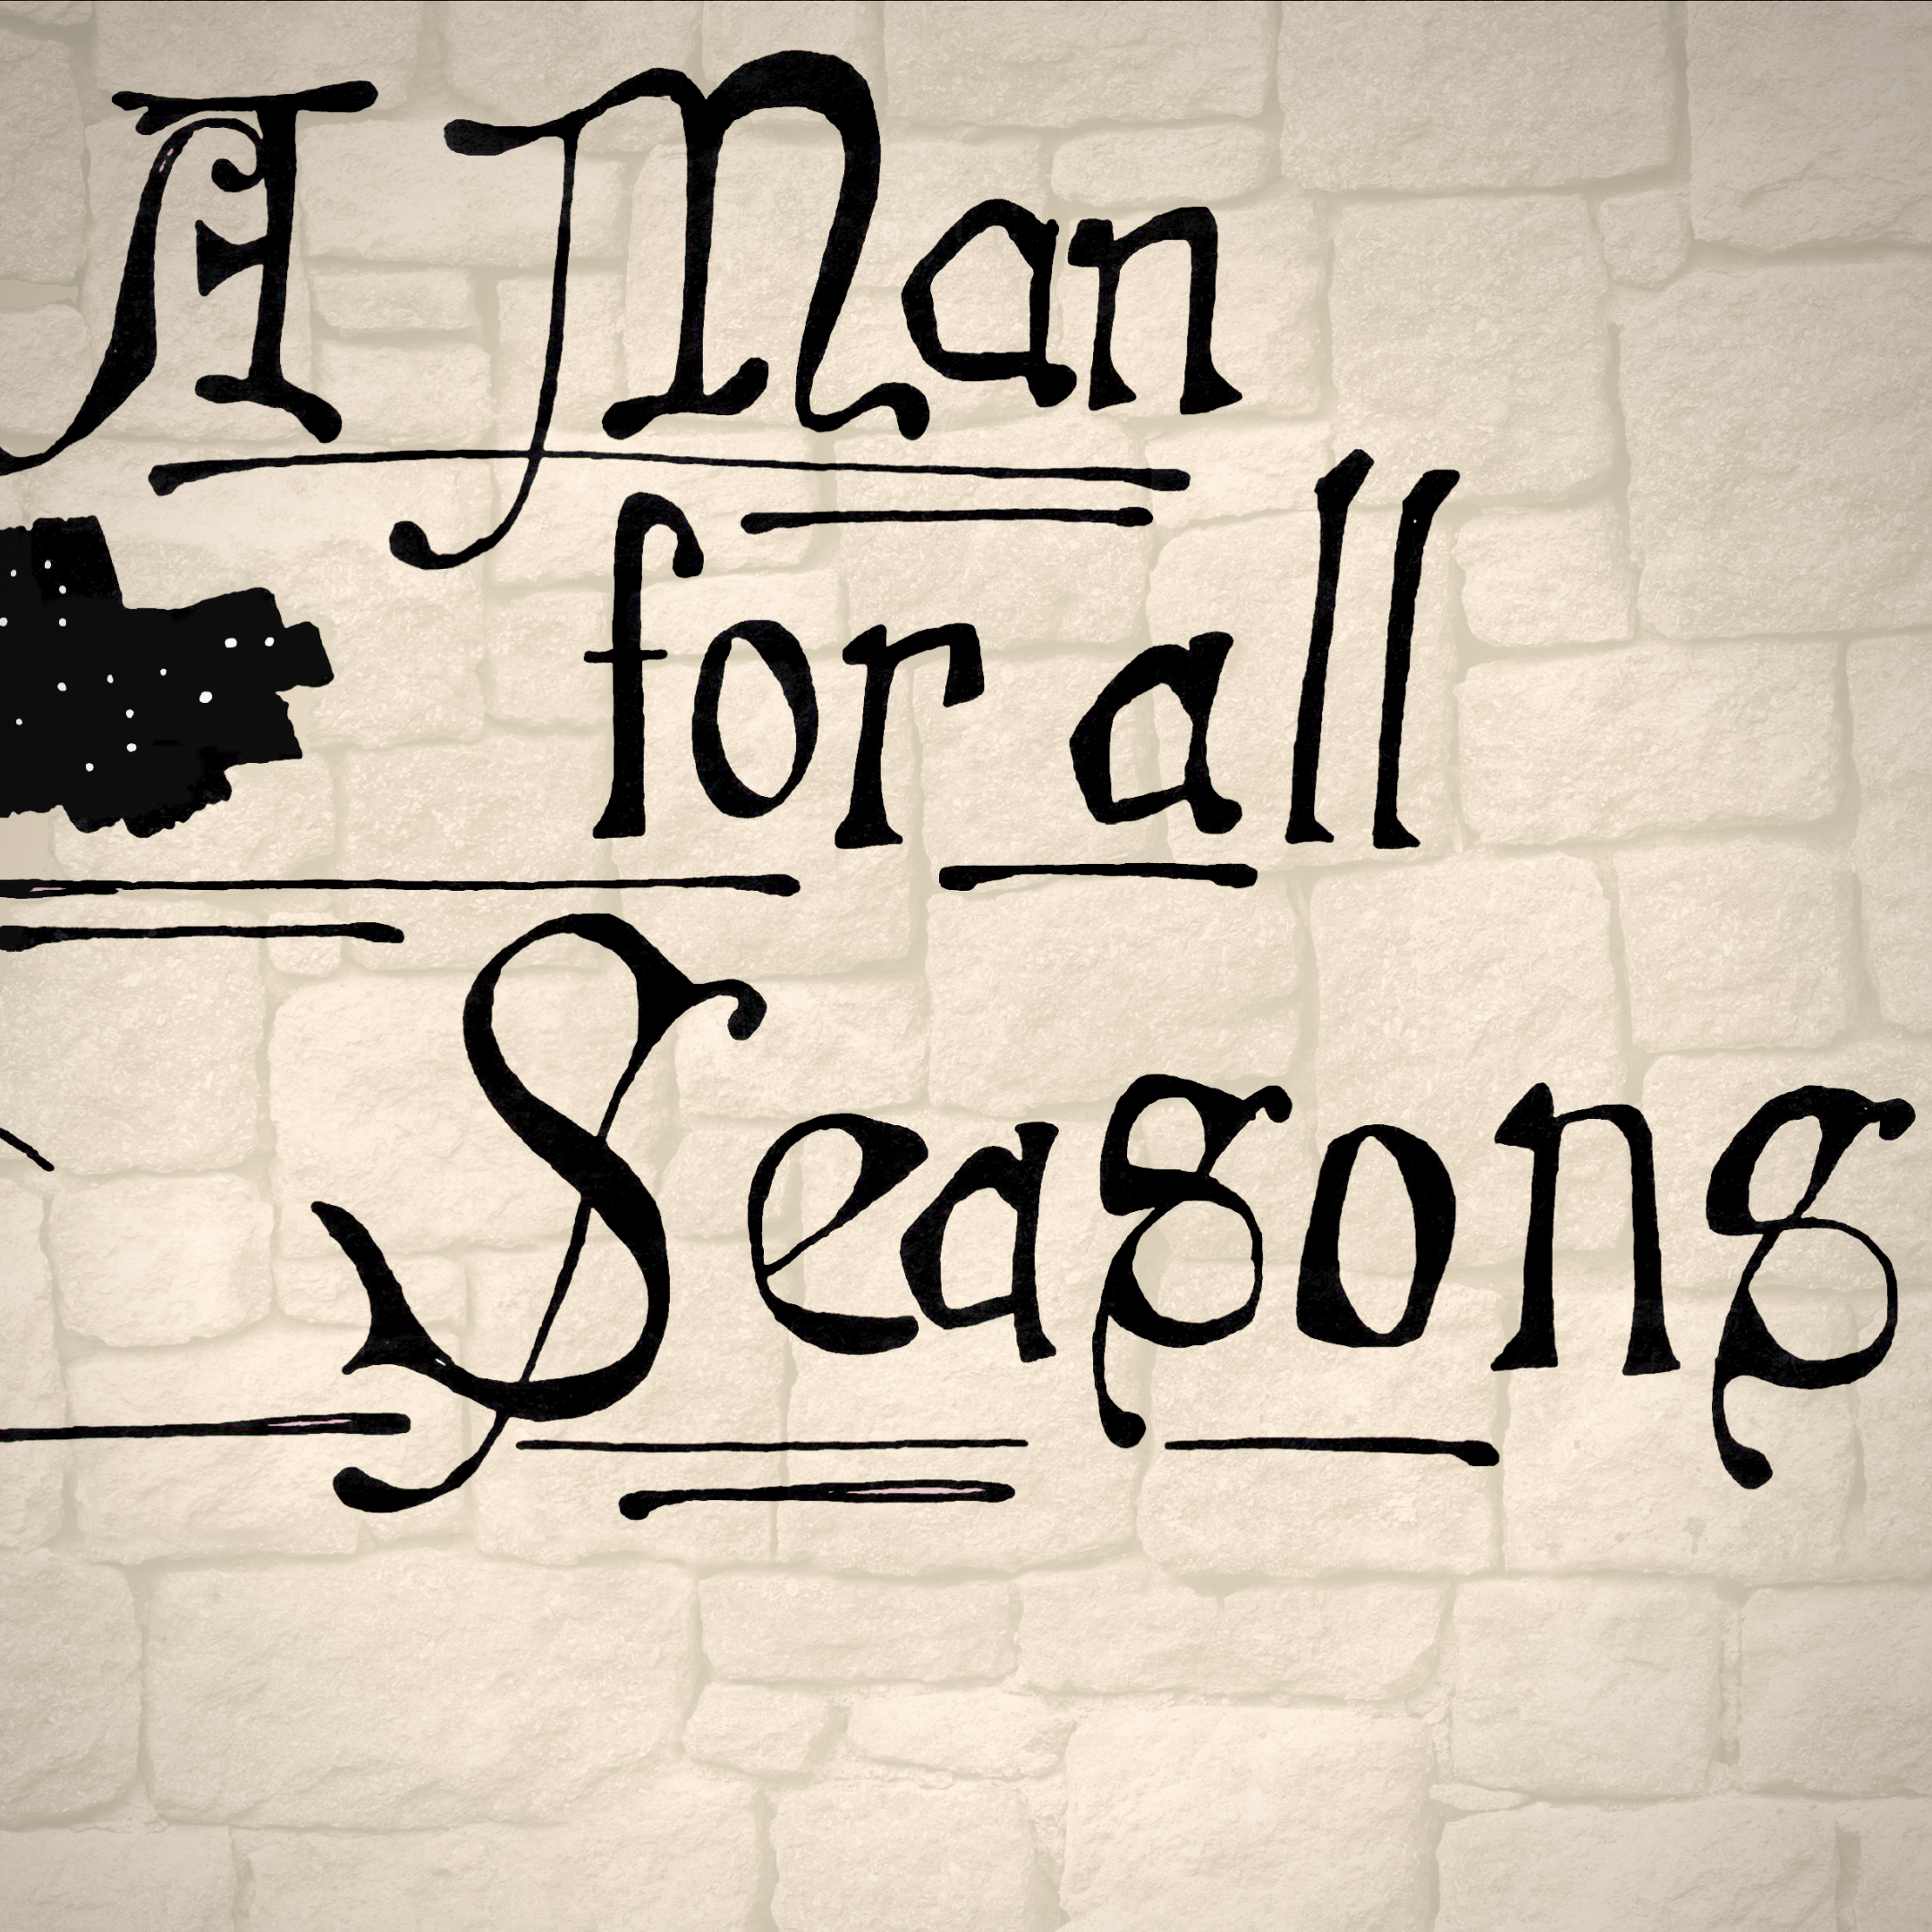 A Man For All Seasons -DATES TBD-